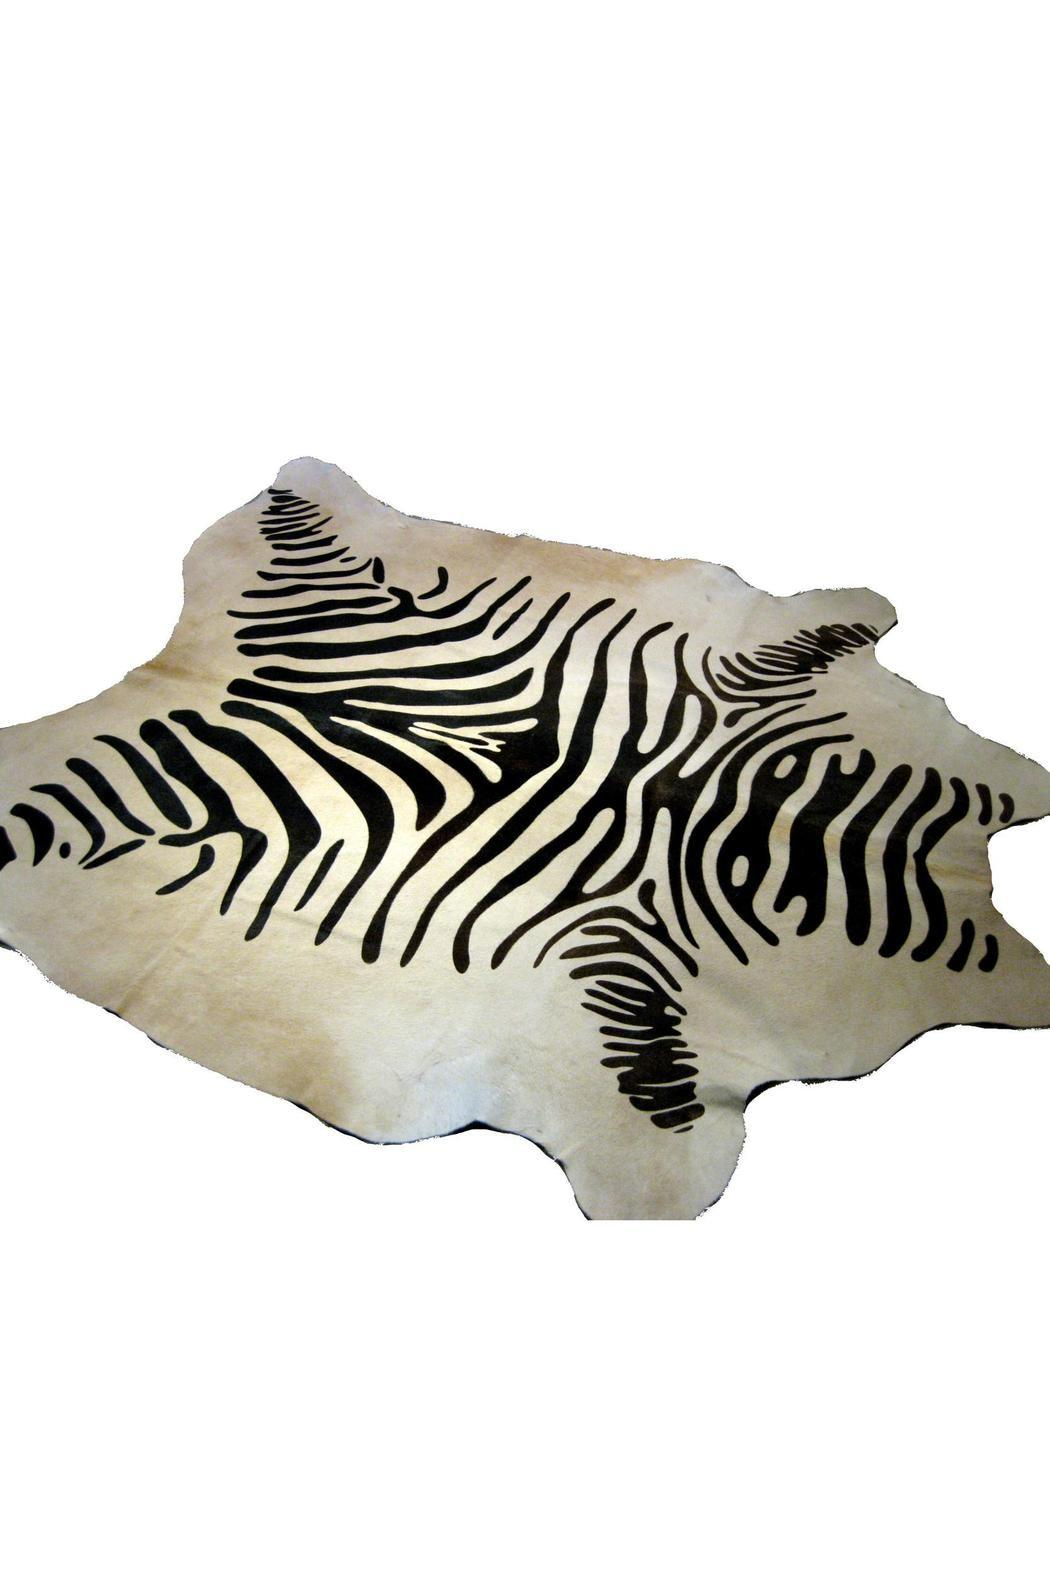 Dise Bos Zebra Brazilian Cowhide Rug Boston